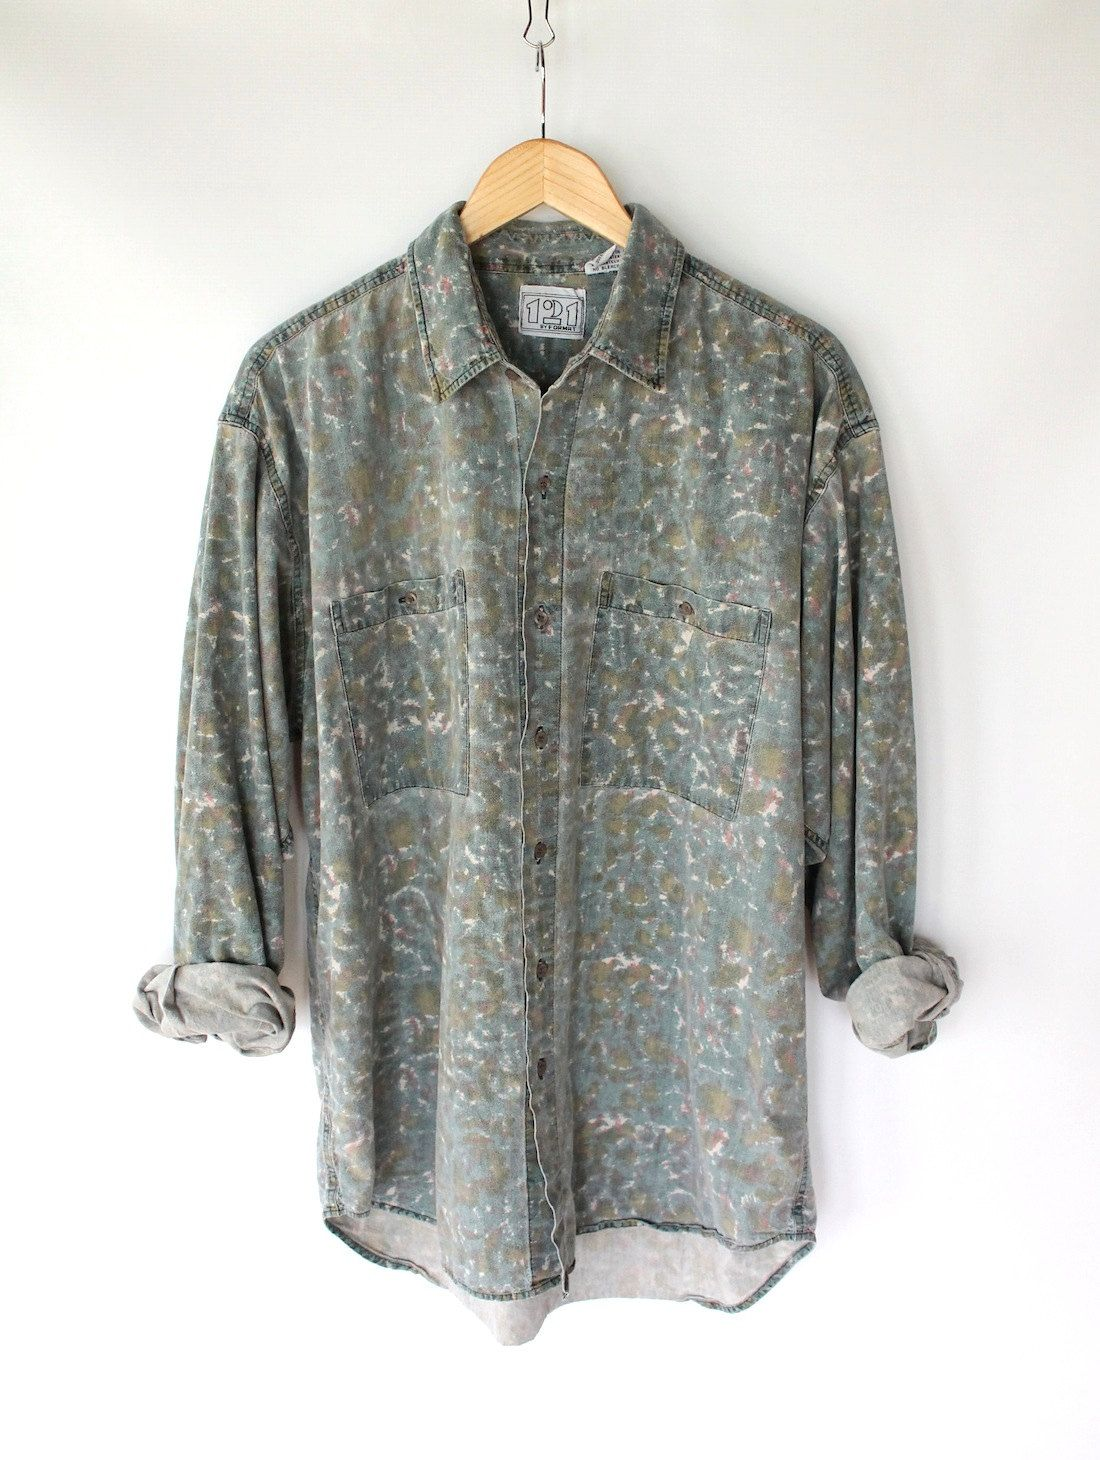 Vintage 80s Mens Faded Watercolor Print Button Up Shirt Cotton